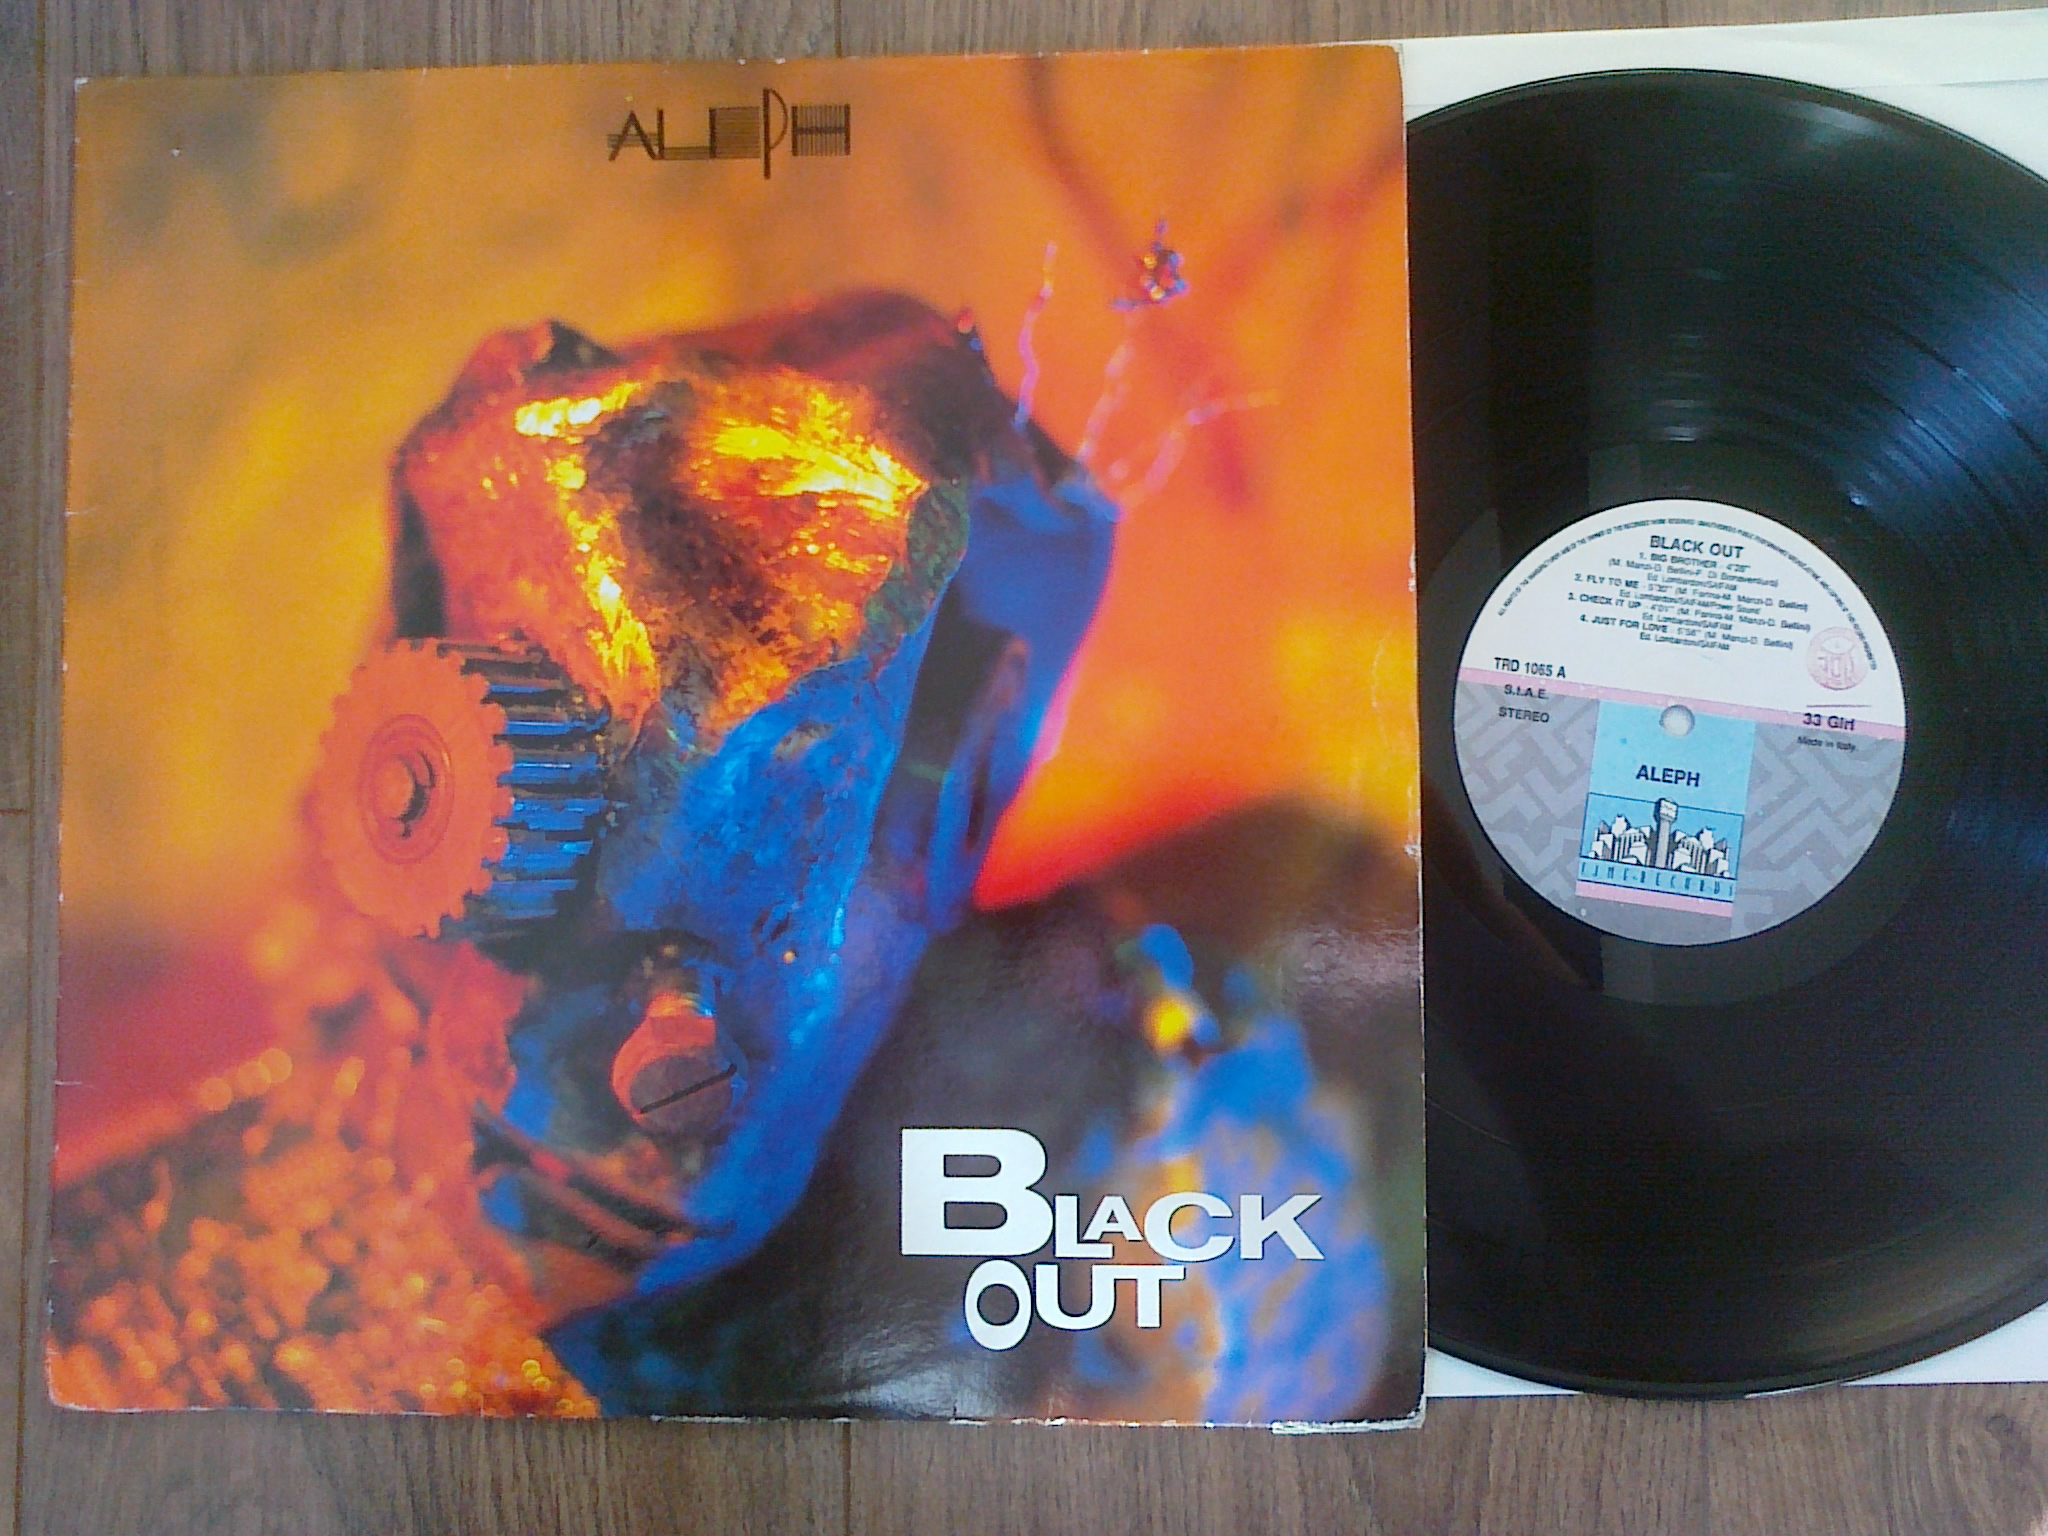 Aleph - Black Out LP